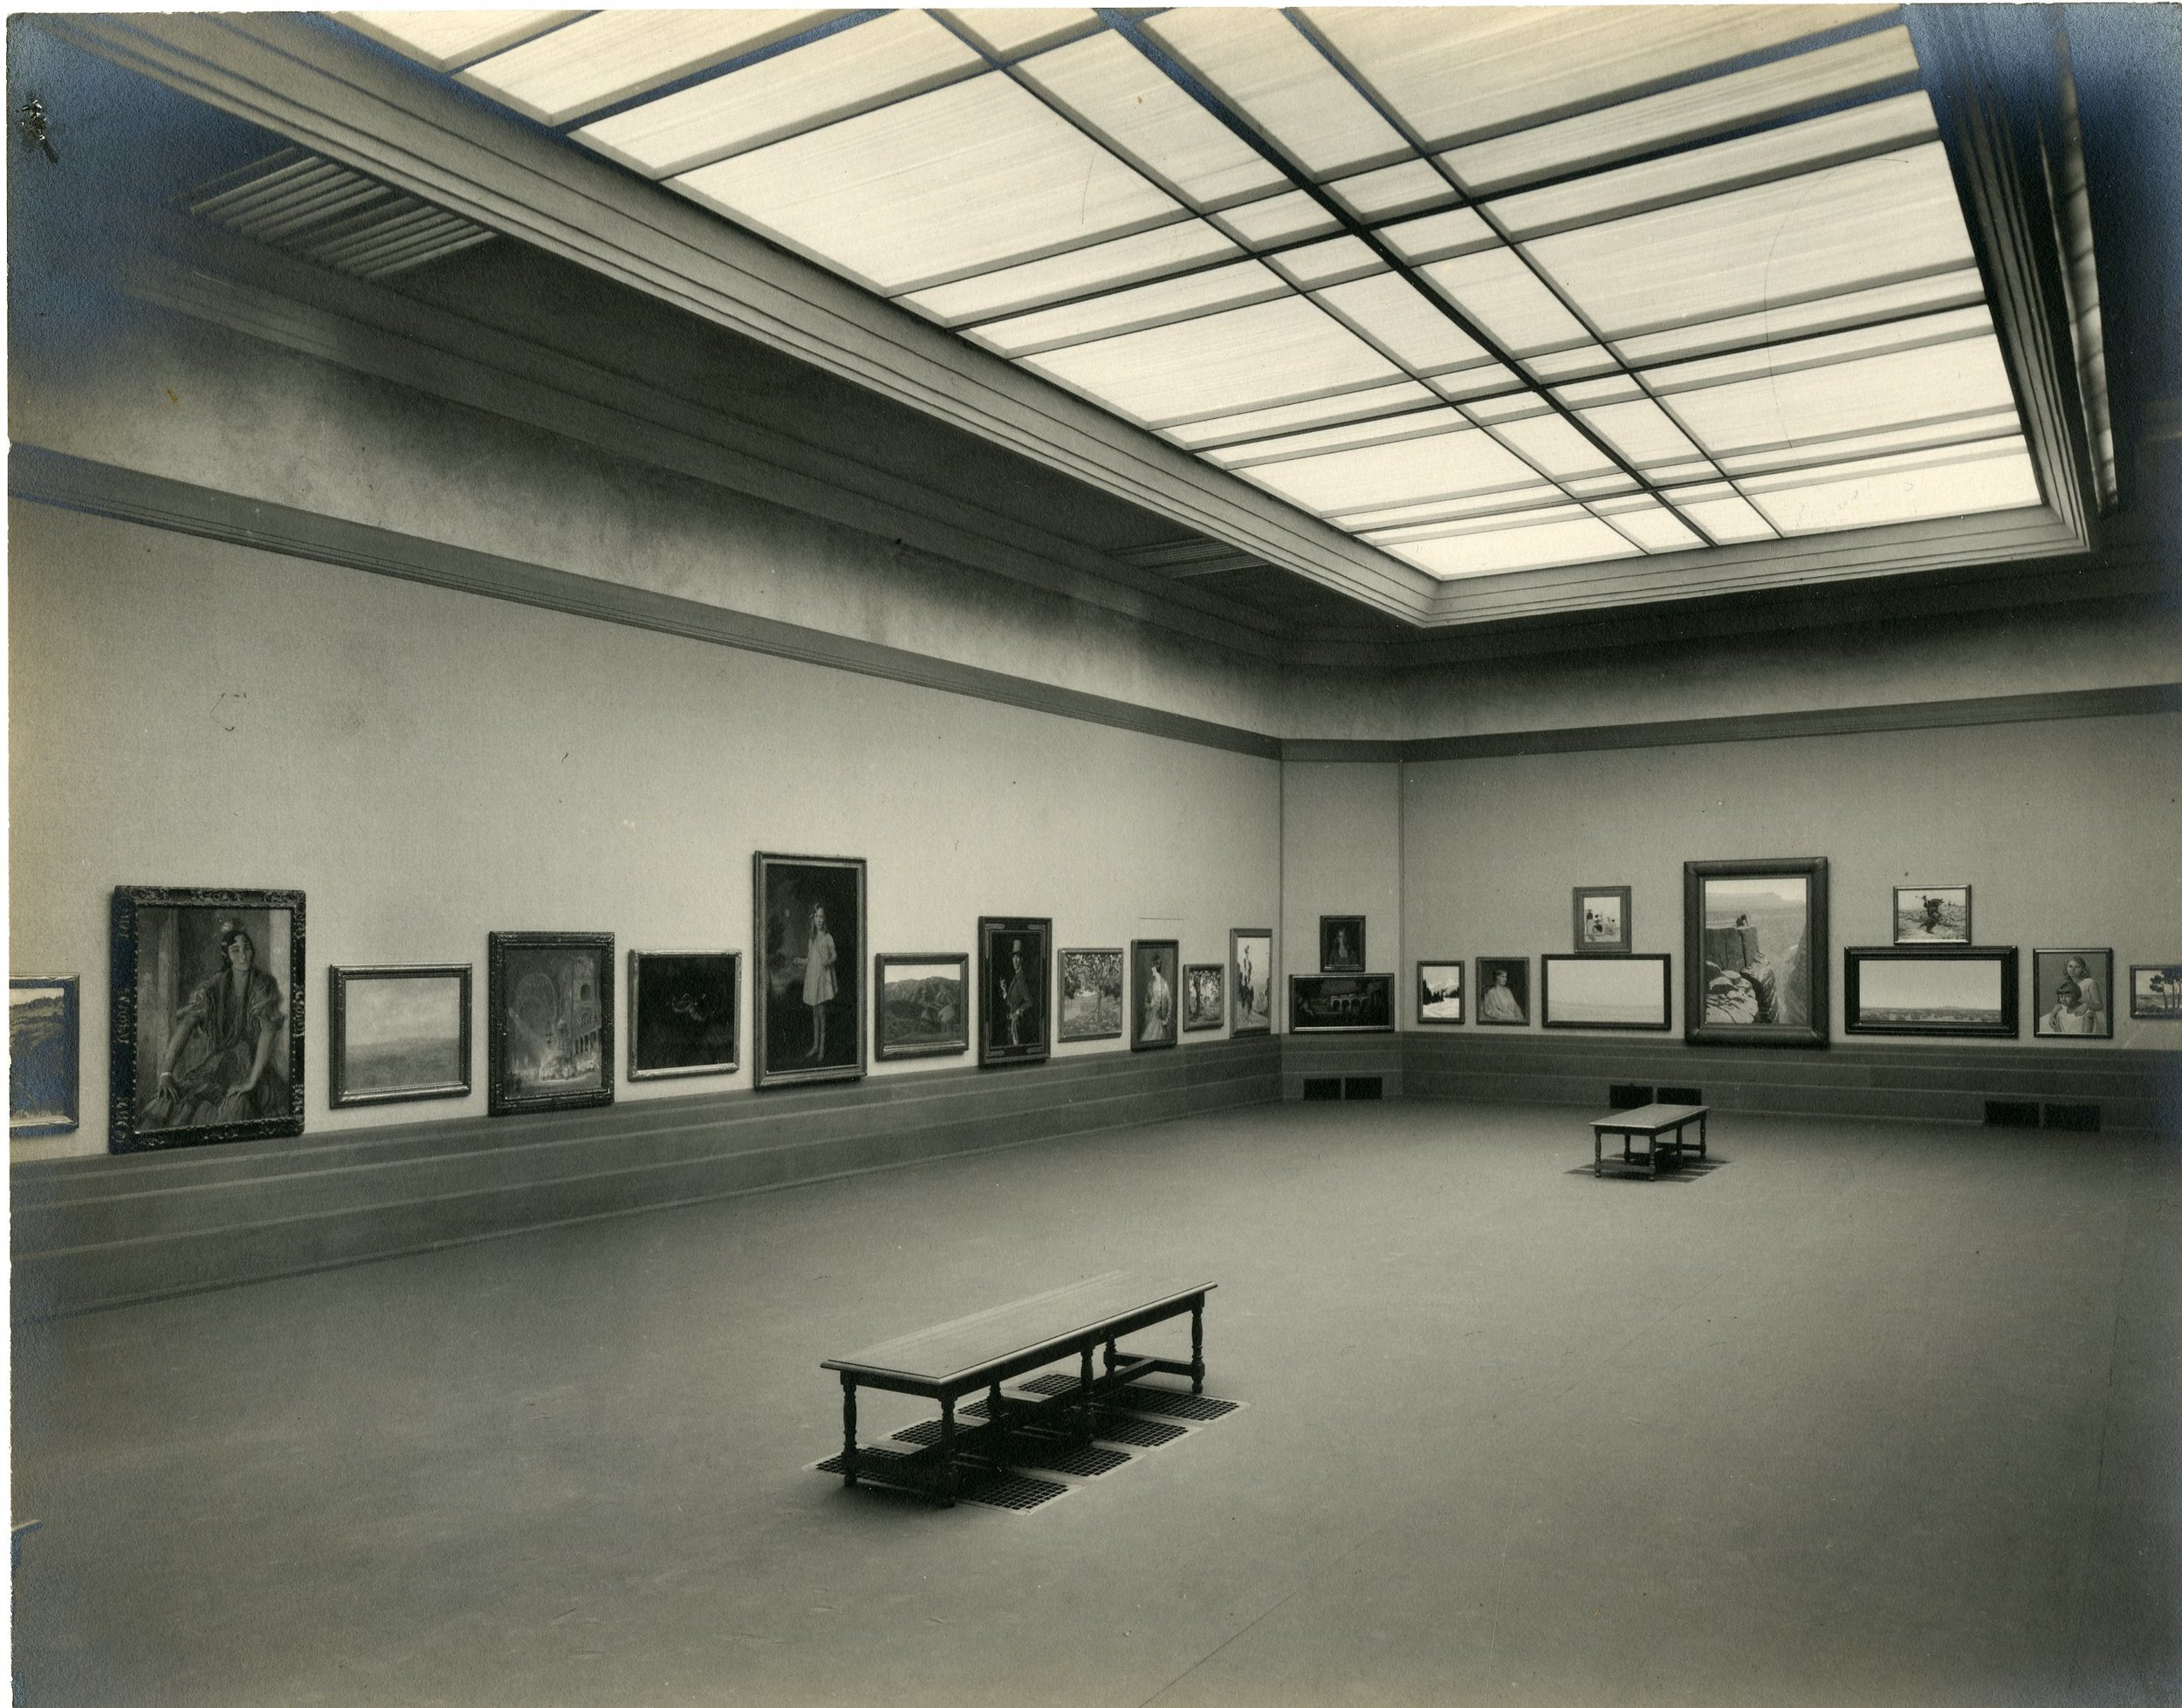 Faulkner Gallery exhibit at 1930 grand opening. Third full picture from far left: Likely a Colin Campbell Cooper's Interior of St. Mark's Cathedral. Big vertical painting at end of room is an over-the-top Grand Canyon by Fernand Lungren. Photoimage courtesy of Santa Barbara Public Library.